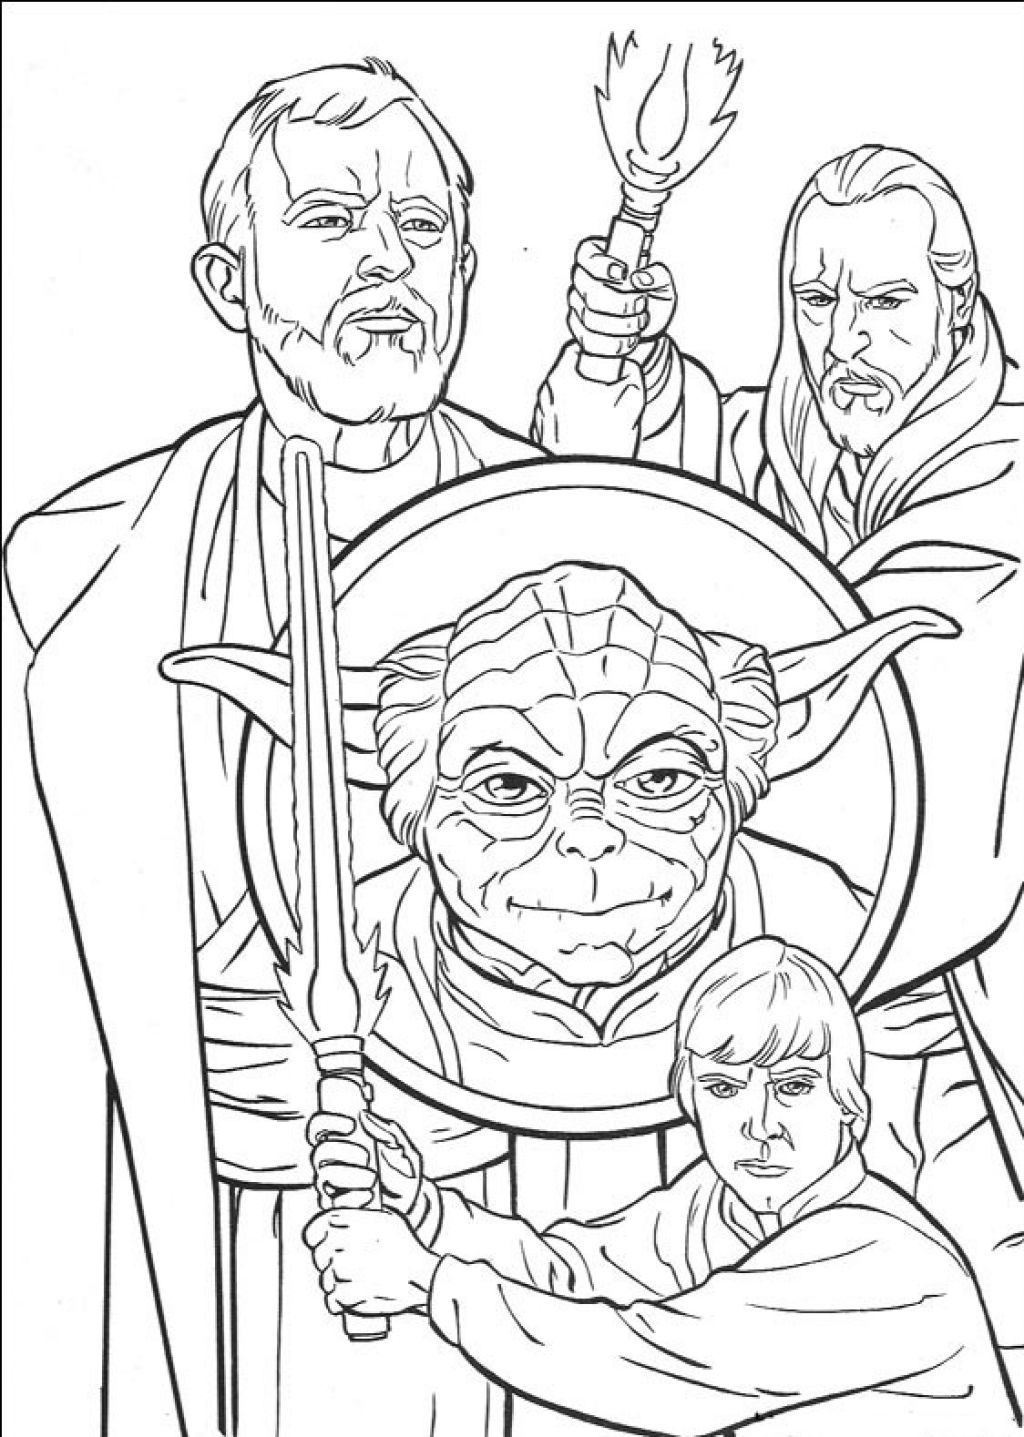 star wars free printable coloring pages image source - Printable Coloring Pages Star Wars